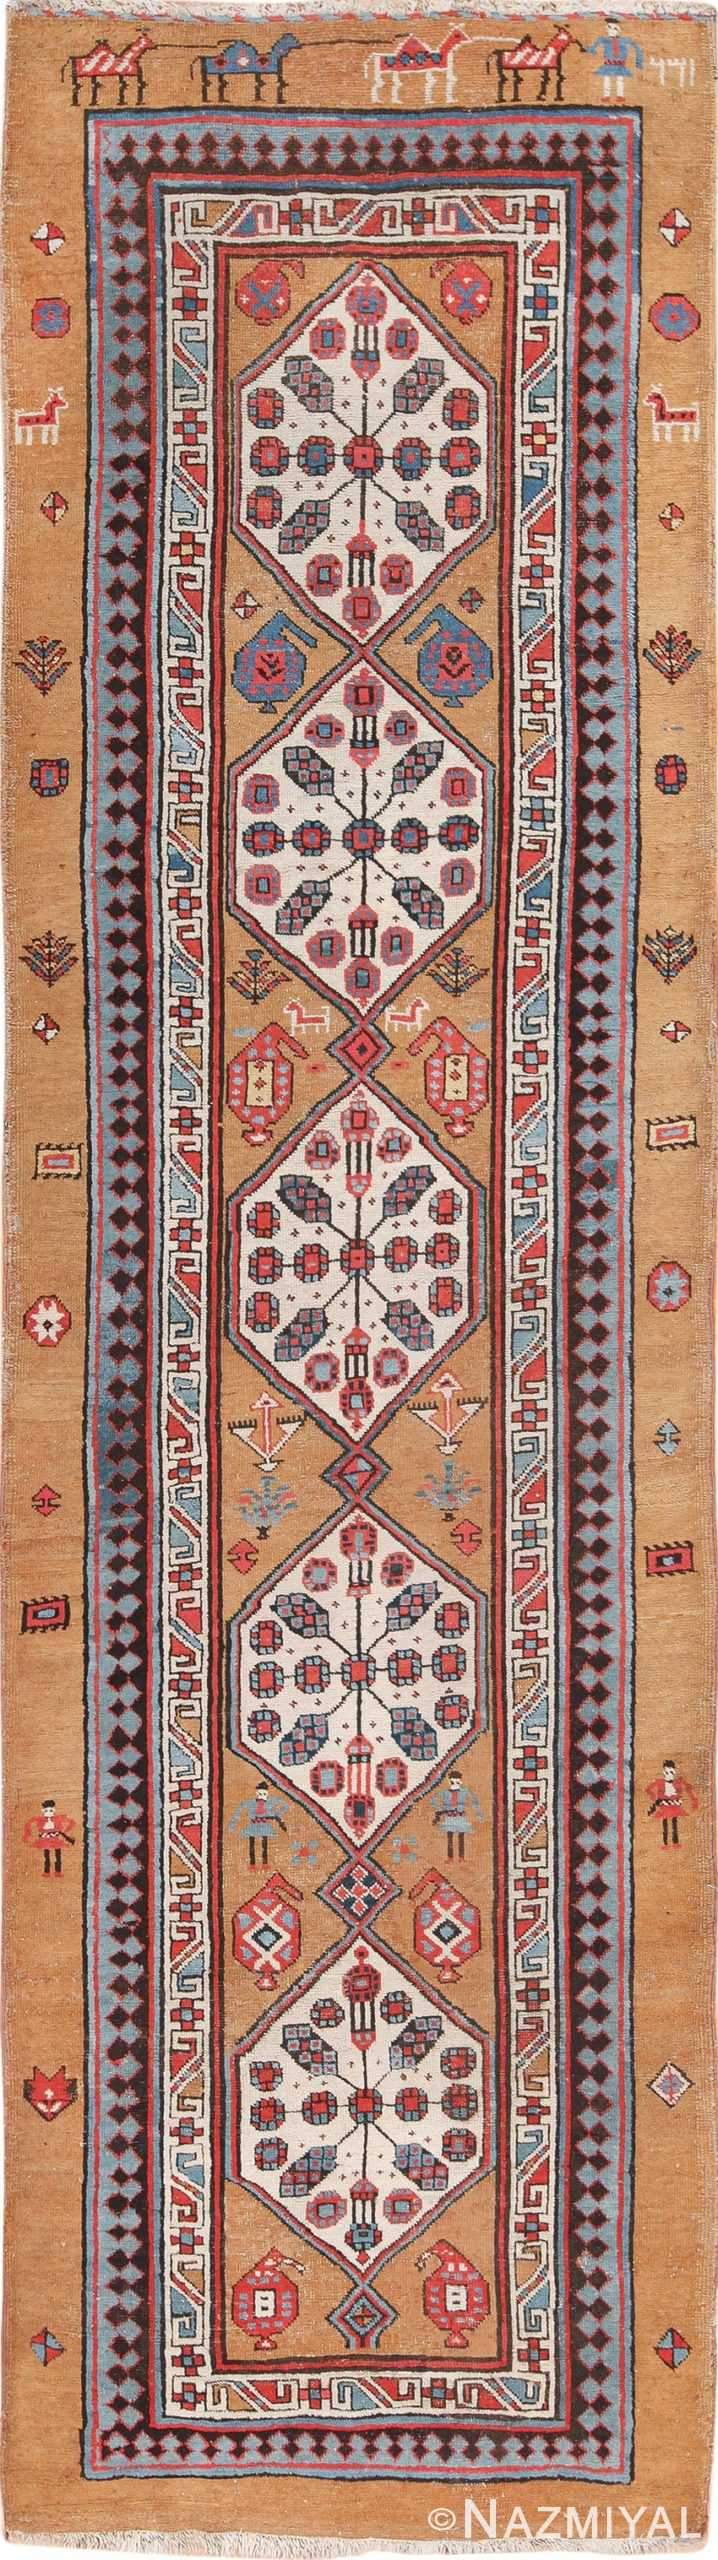 Antique Tribal Persian Bakshaish Runner Rug 49725 - Nazmiyal